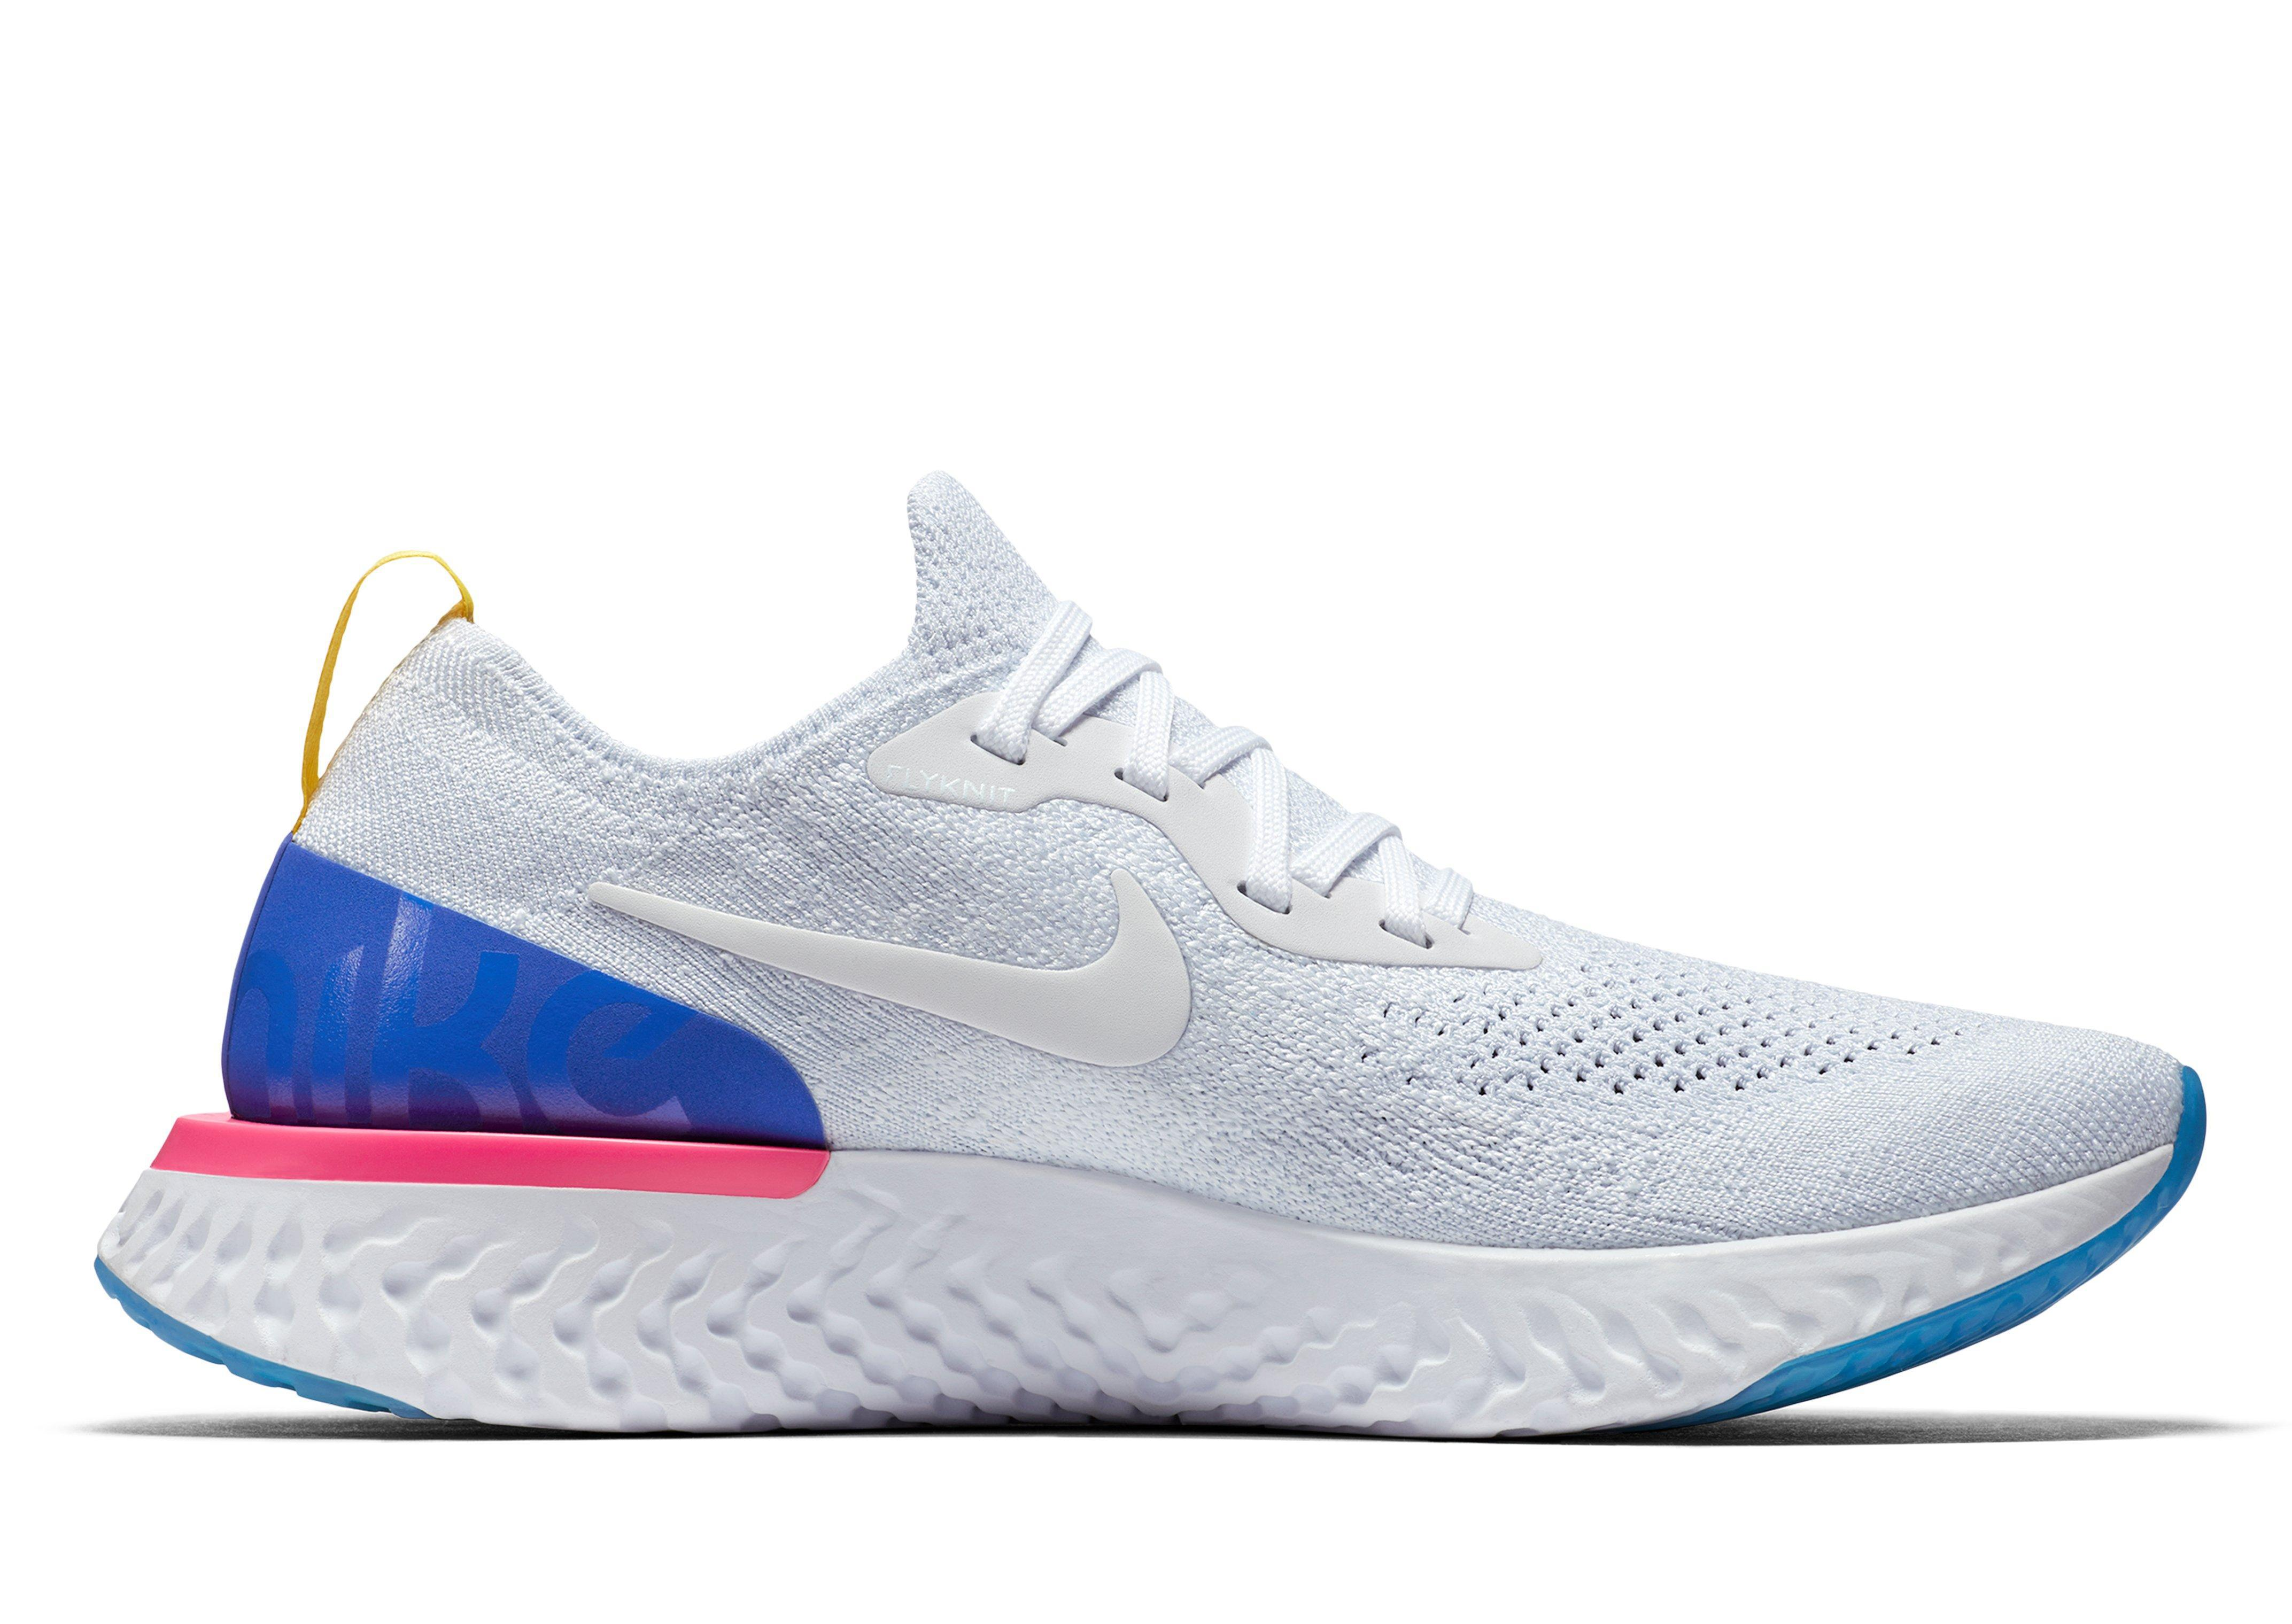 0226779b0a5d Nike Epic React Flyknit Running Shoes in Blue - Lyst